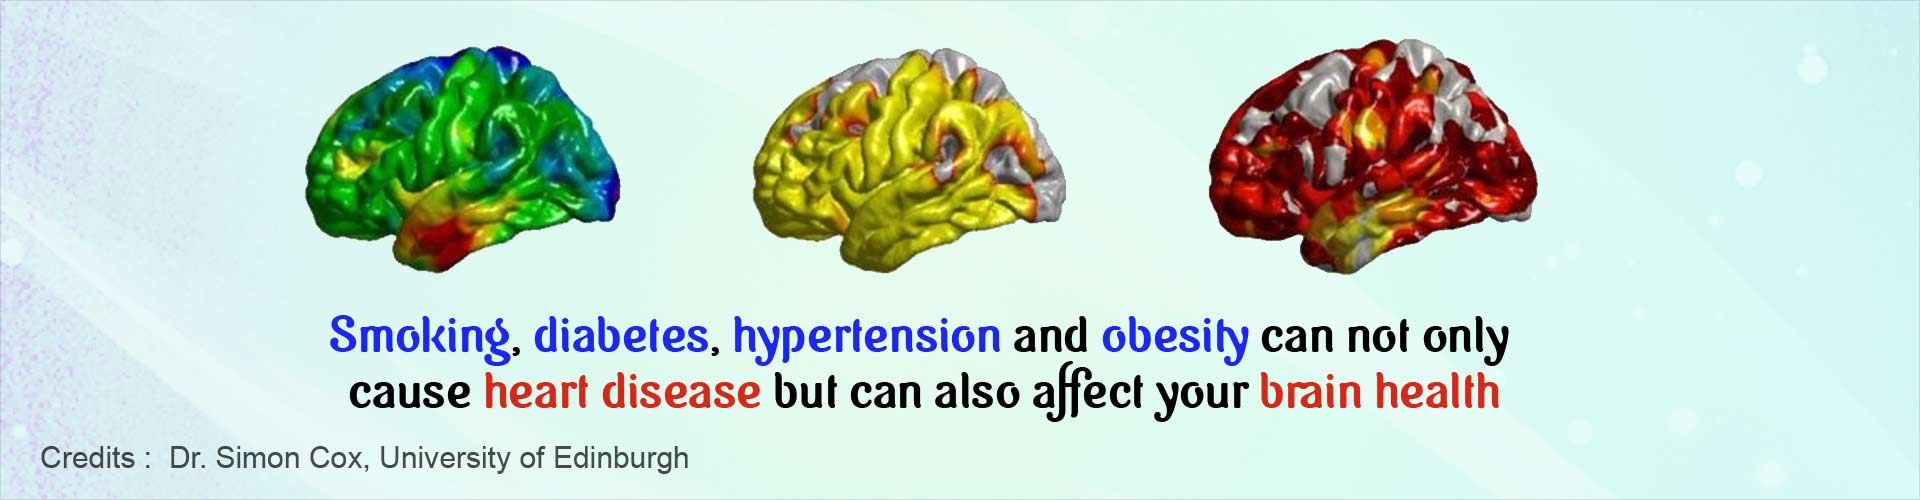 Smoking, diabetes, hypertension and obesity can not only cause heart disease but can also affect your brain health.